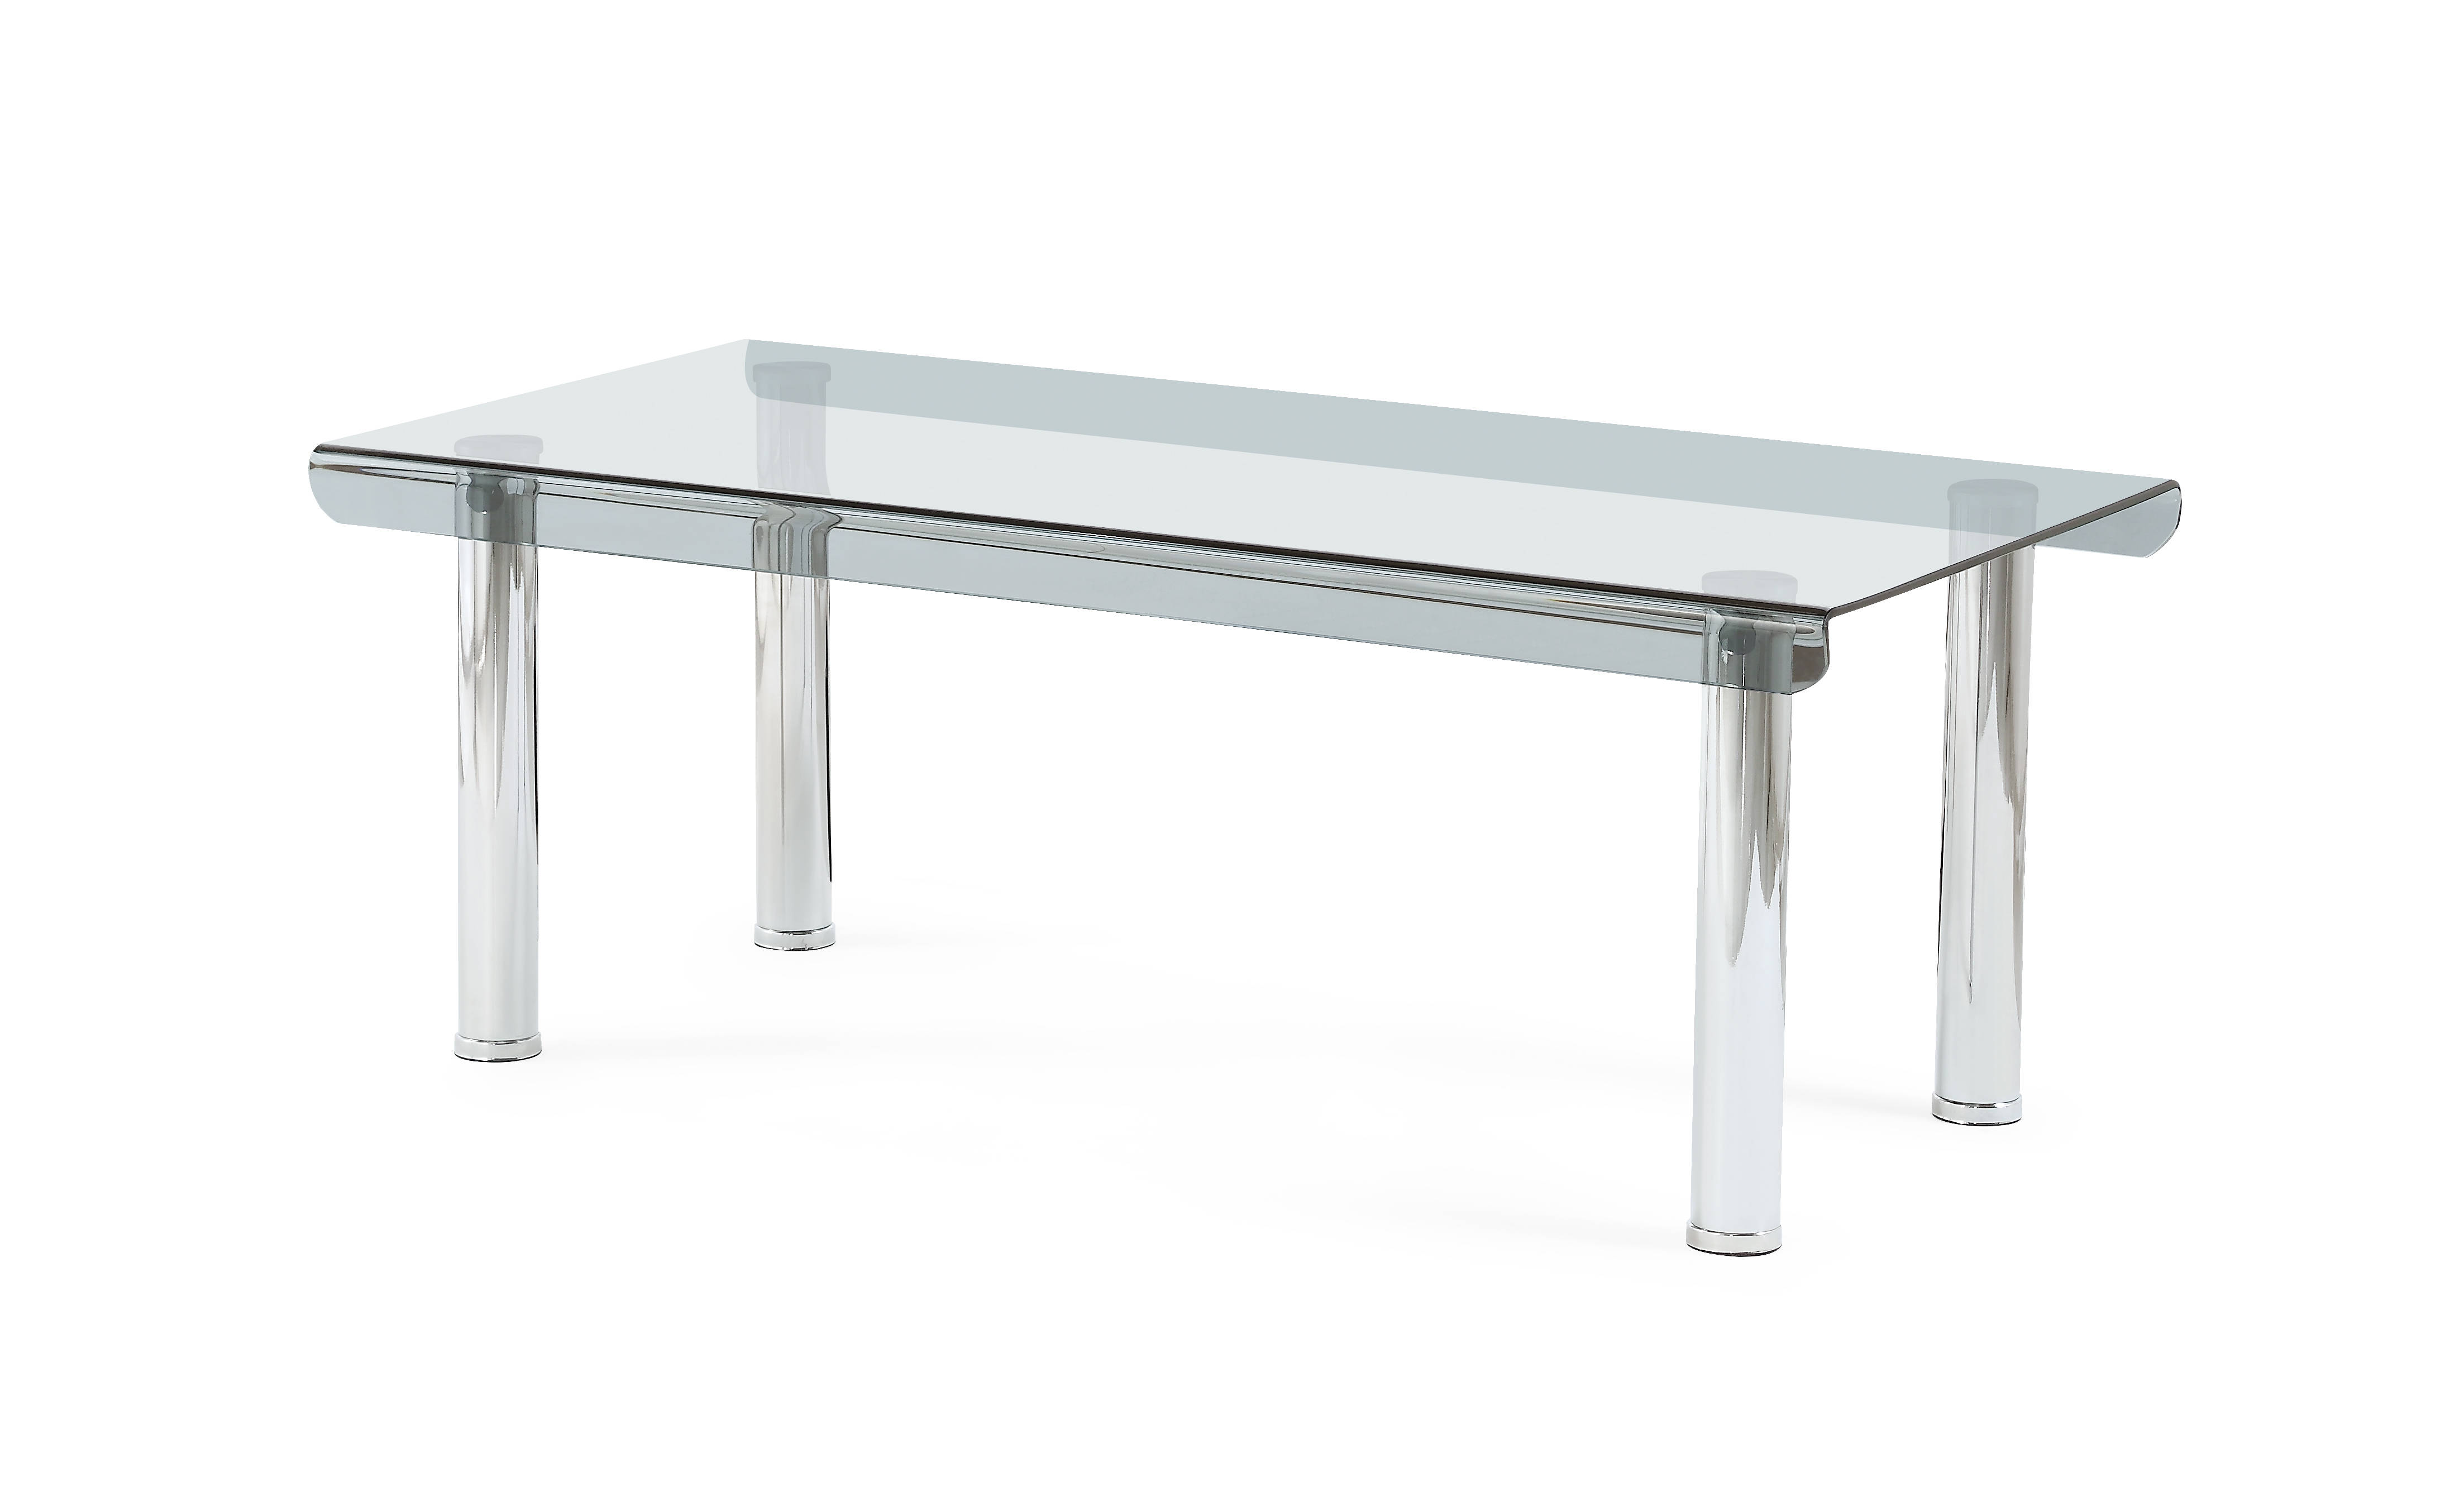 Global Furniture T6080 Coffee Table The Cly Home